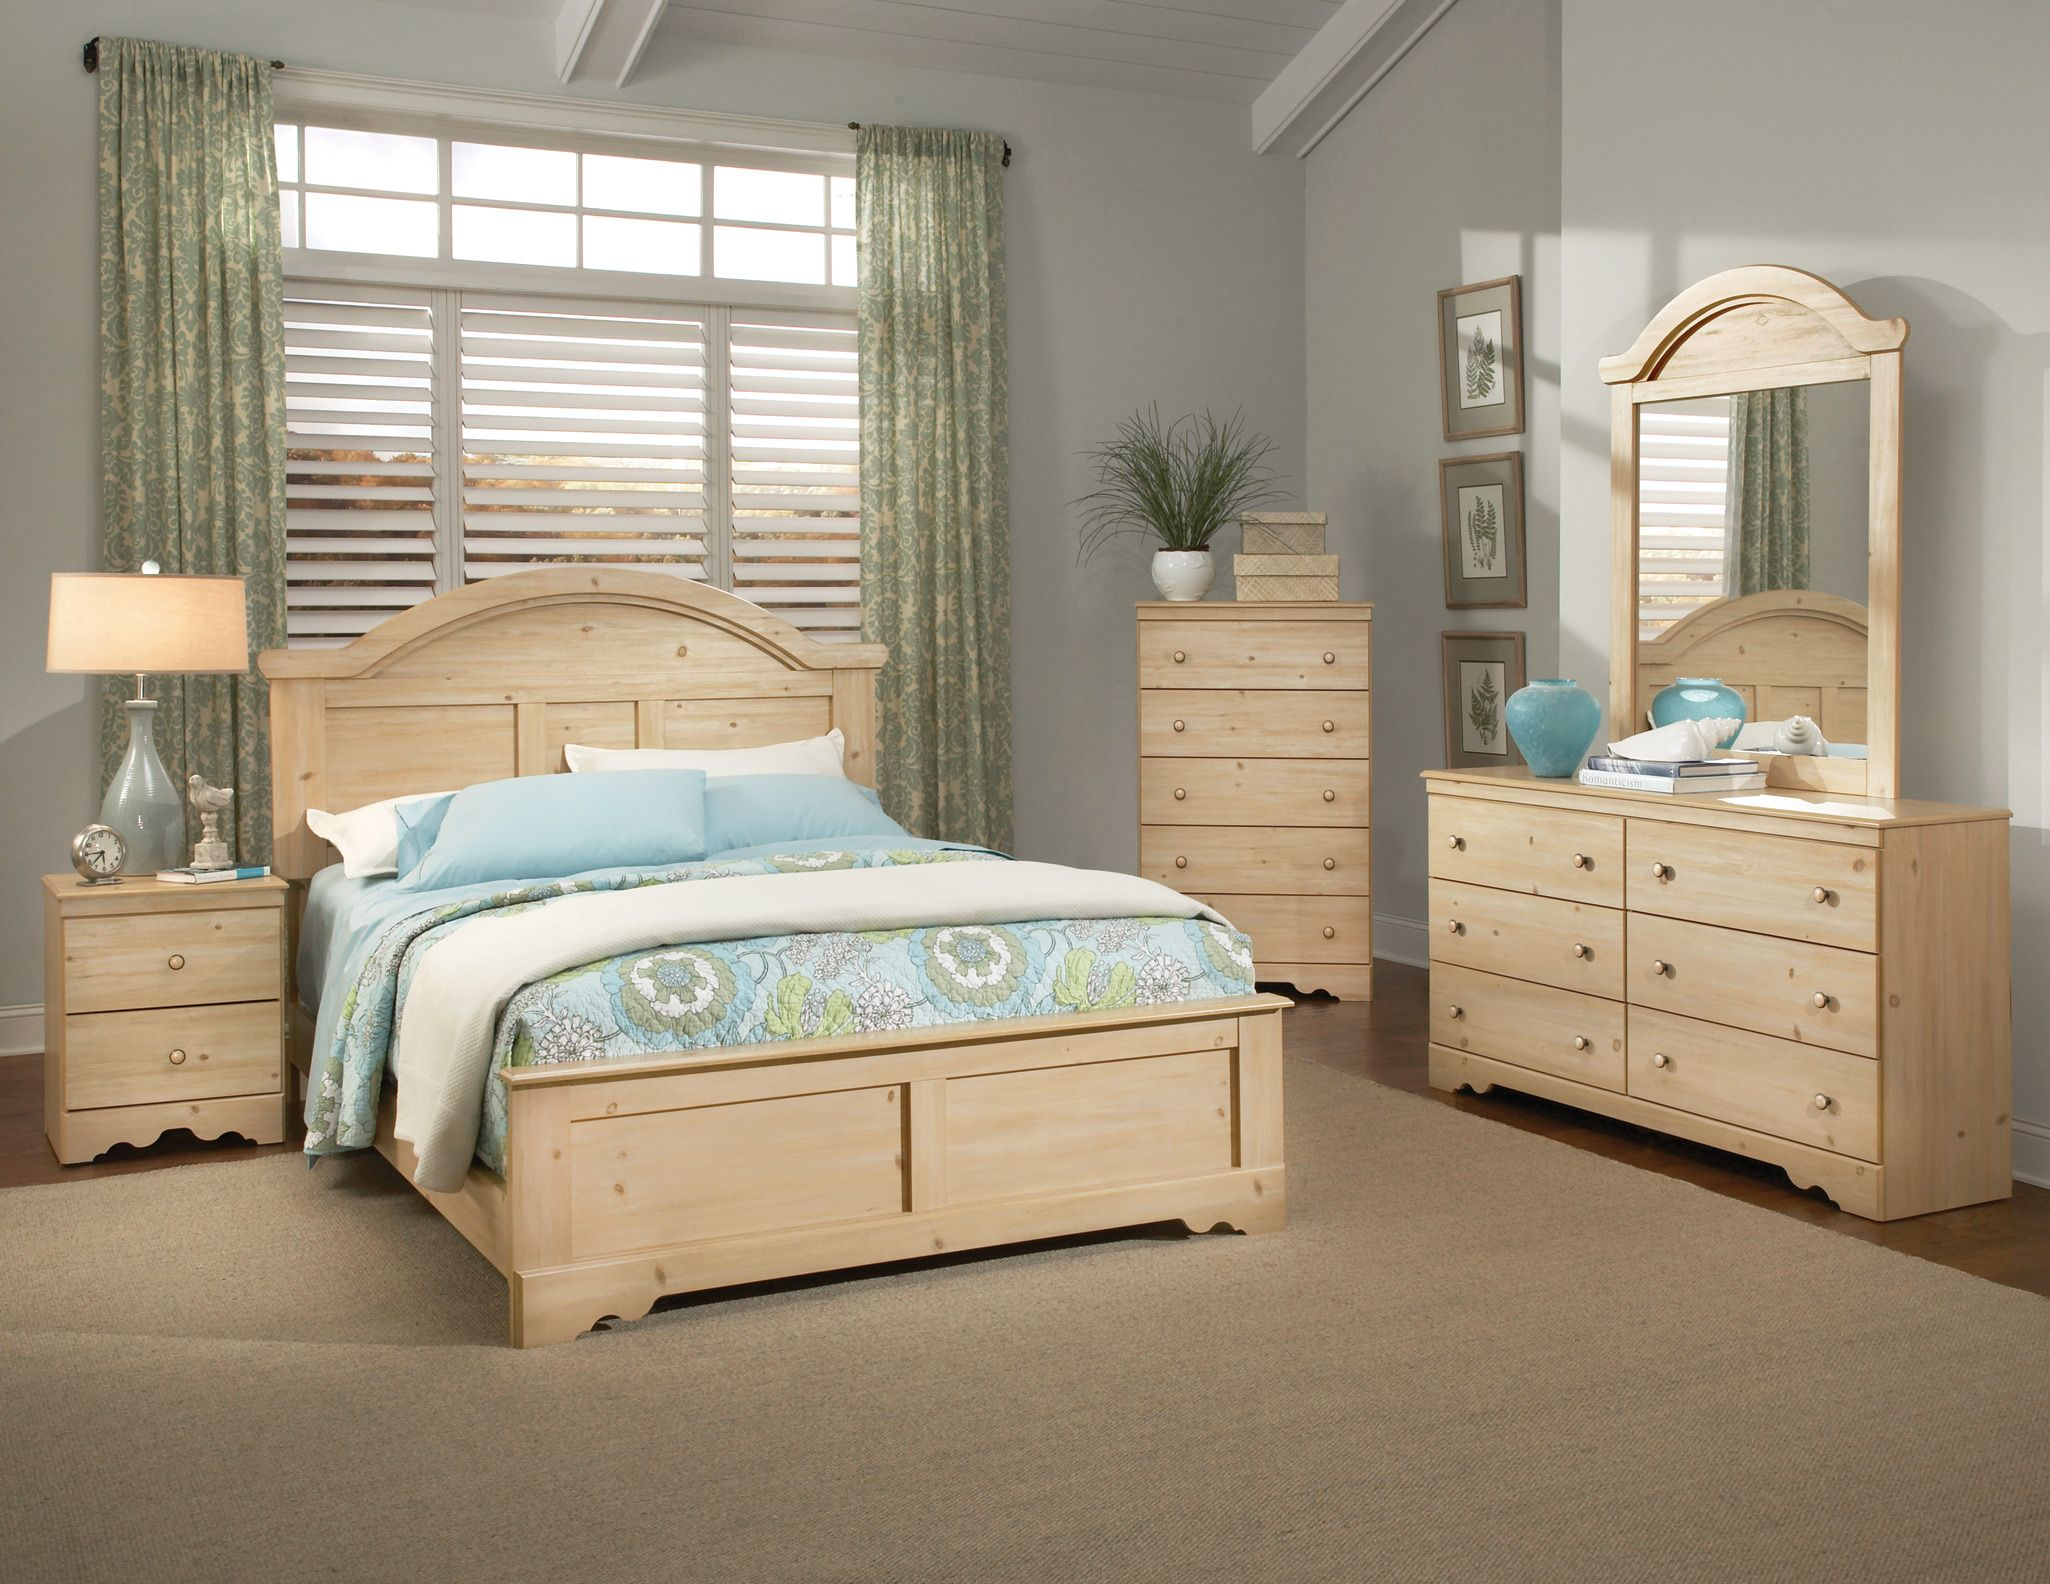 bedroom furniture sets pine design ideas 2017 2018